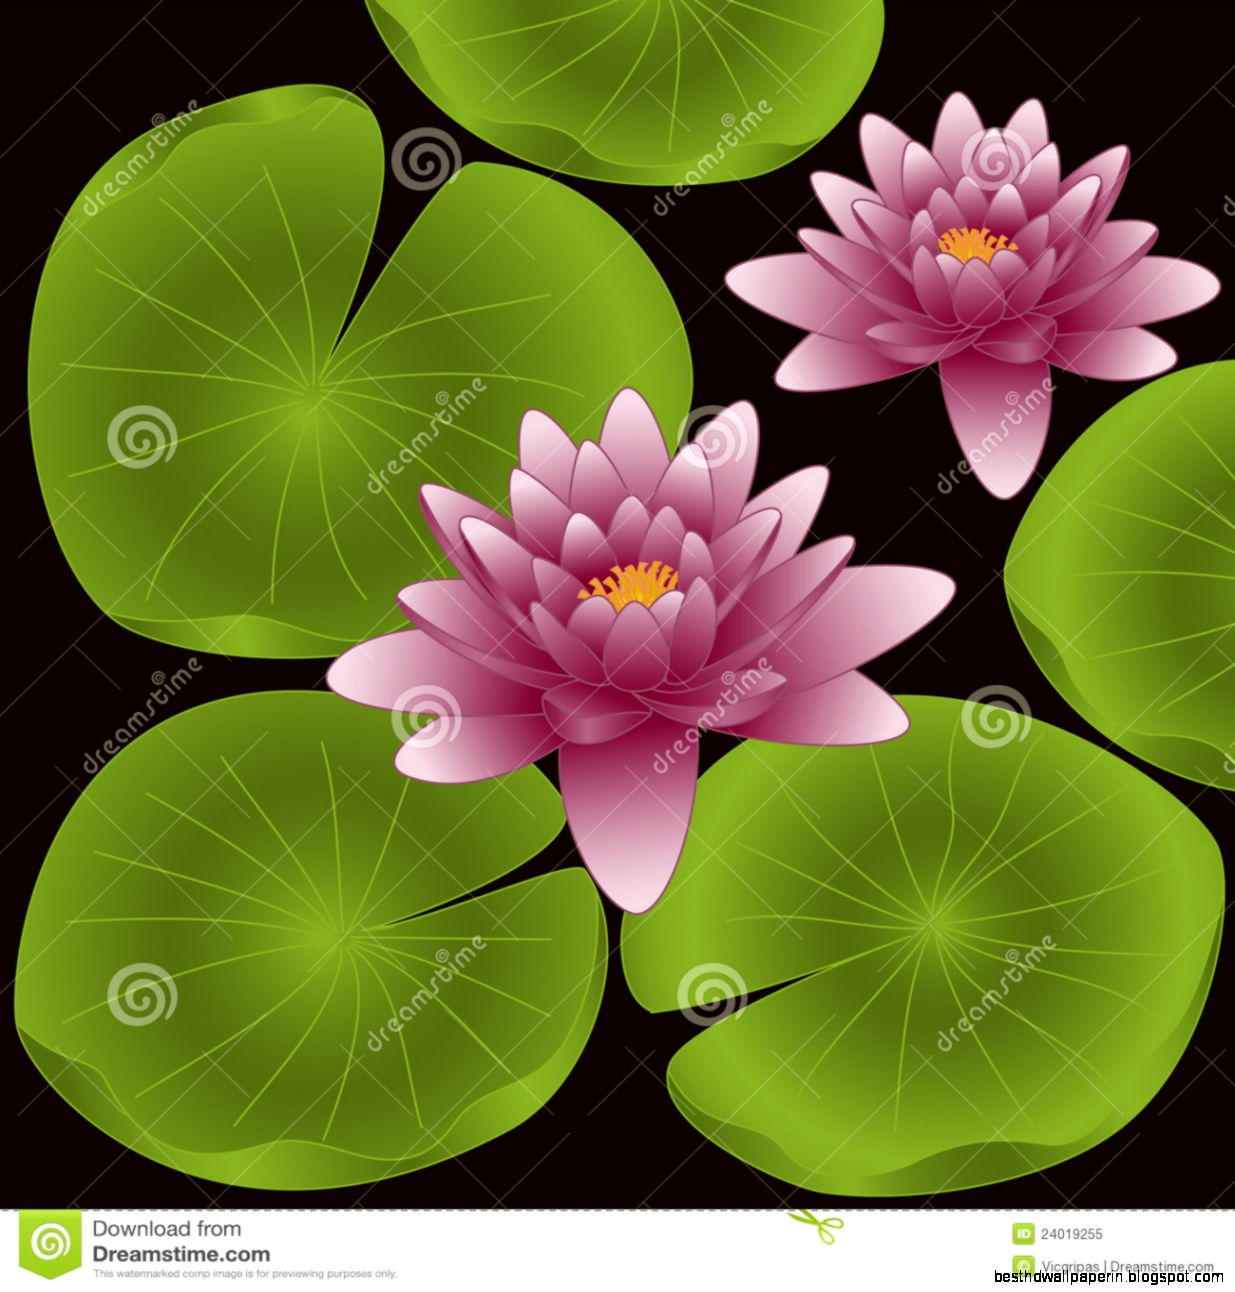 Lotus flower photos free download best hd wallpapers view original size love s first bloom lotus flower mightylinksfo